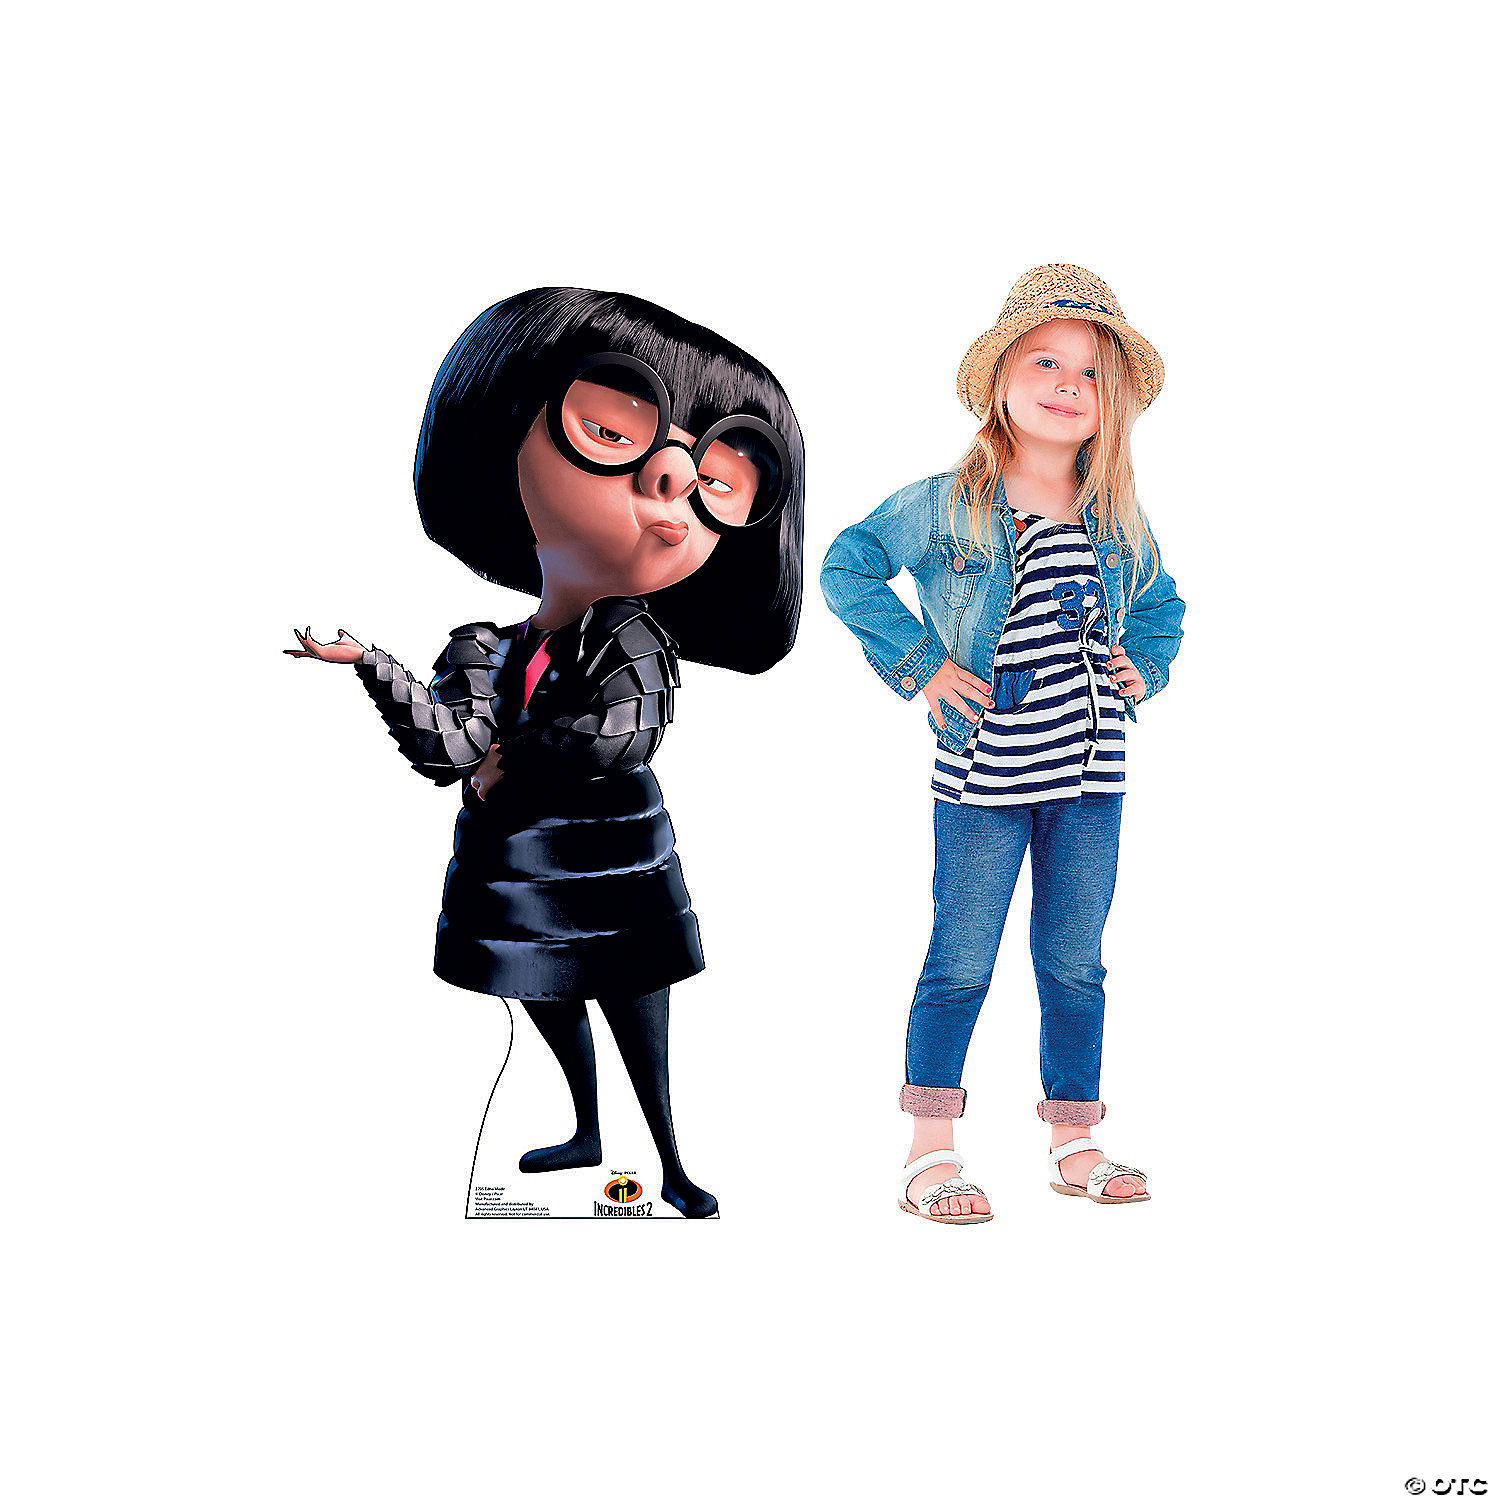 Incredibles 2 Edna Mode Stand Up Oriental Trading